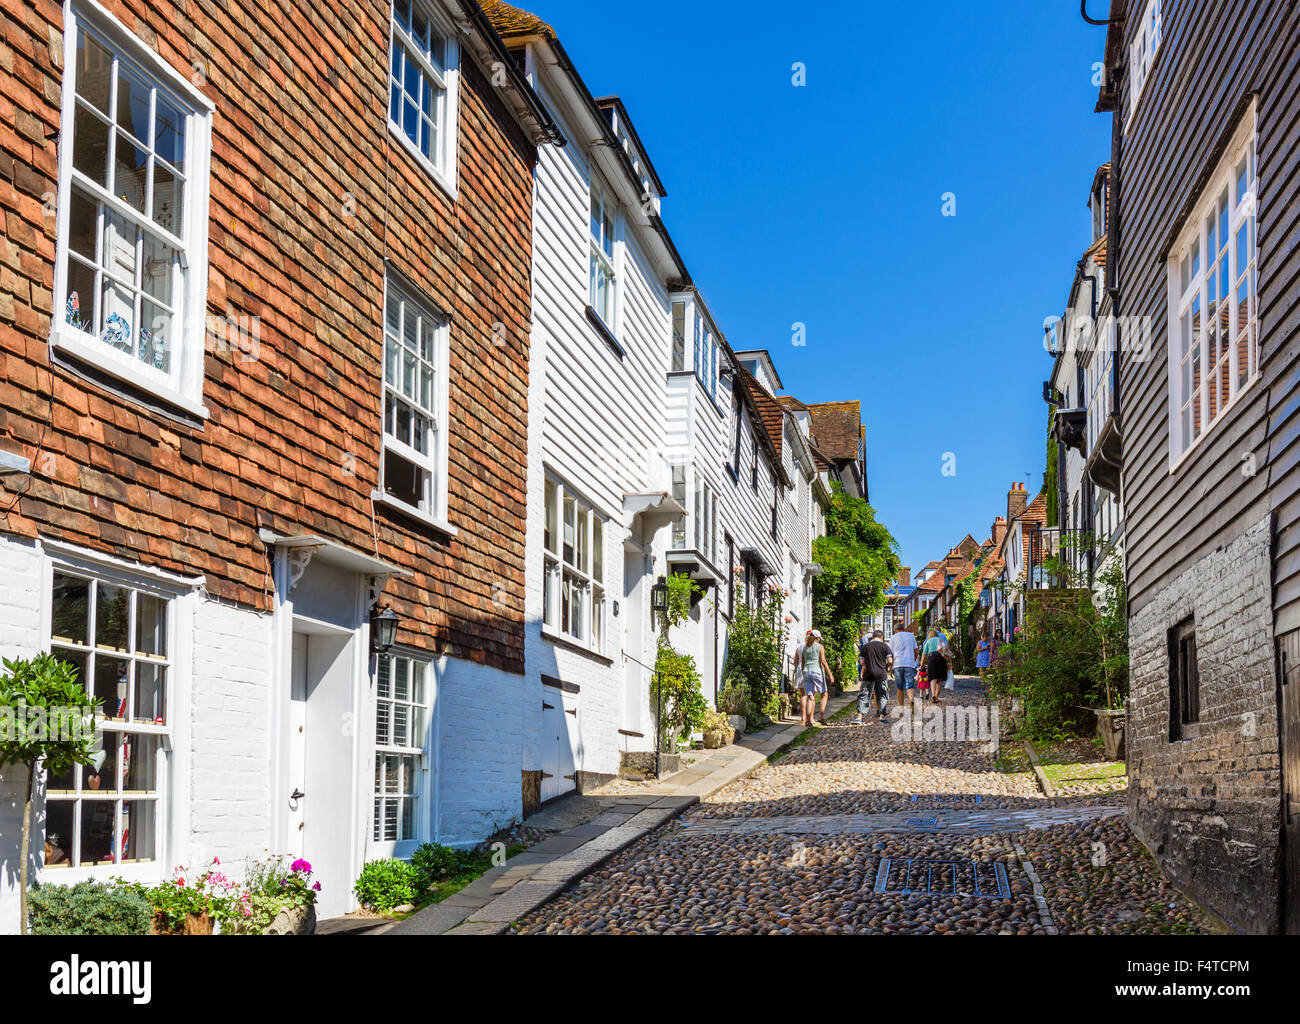 Historic Mermaid Street in the old town, Rye, East Sussex, England, UK - Stock Image